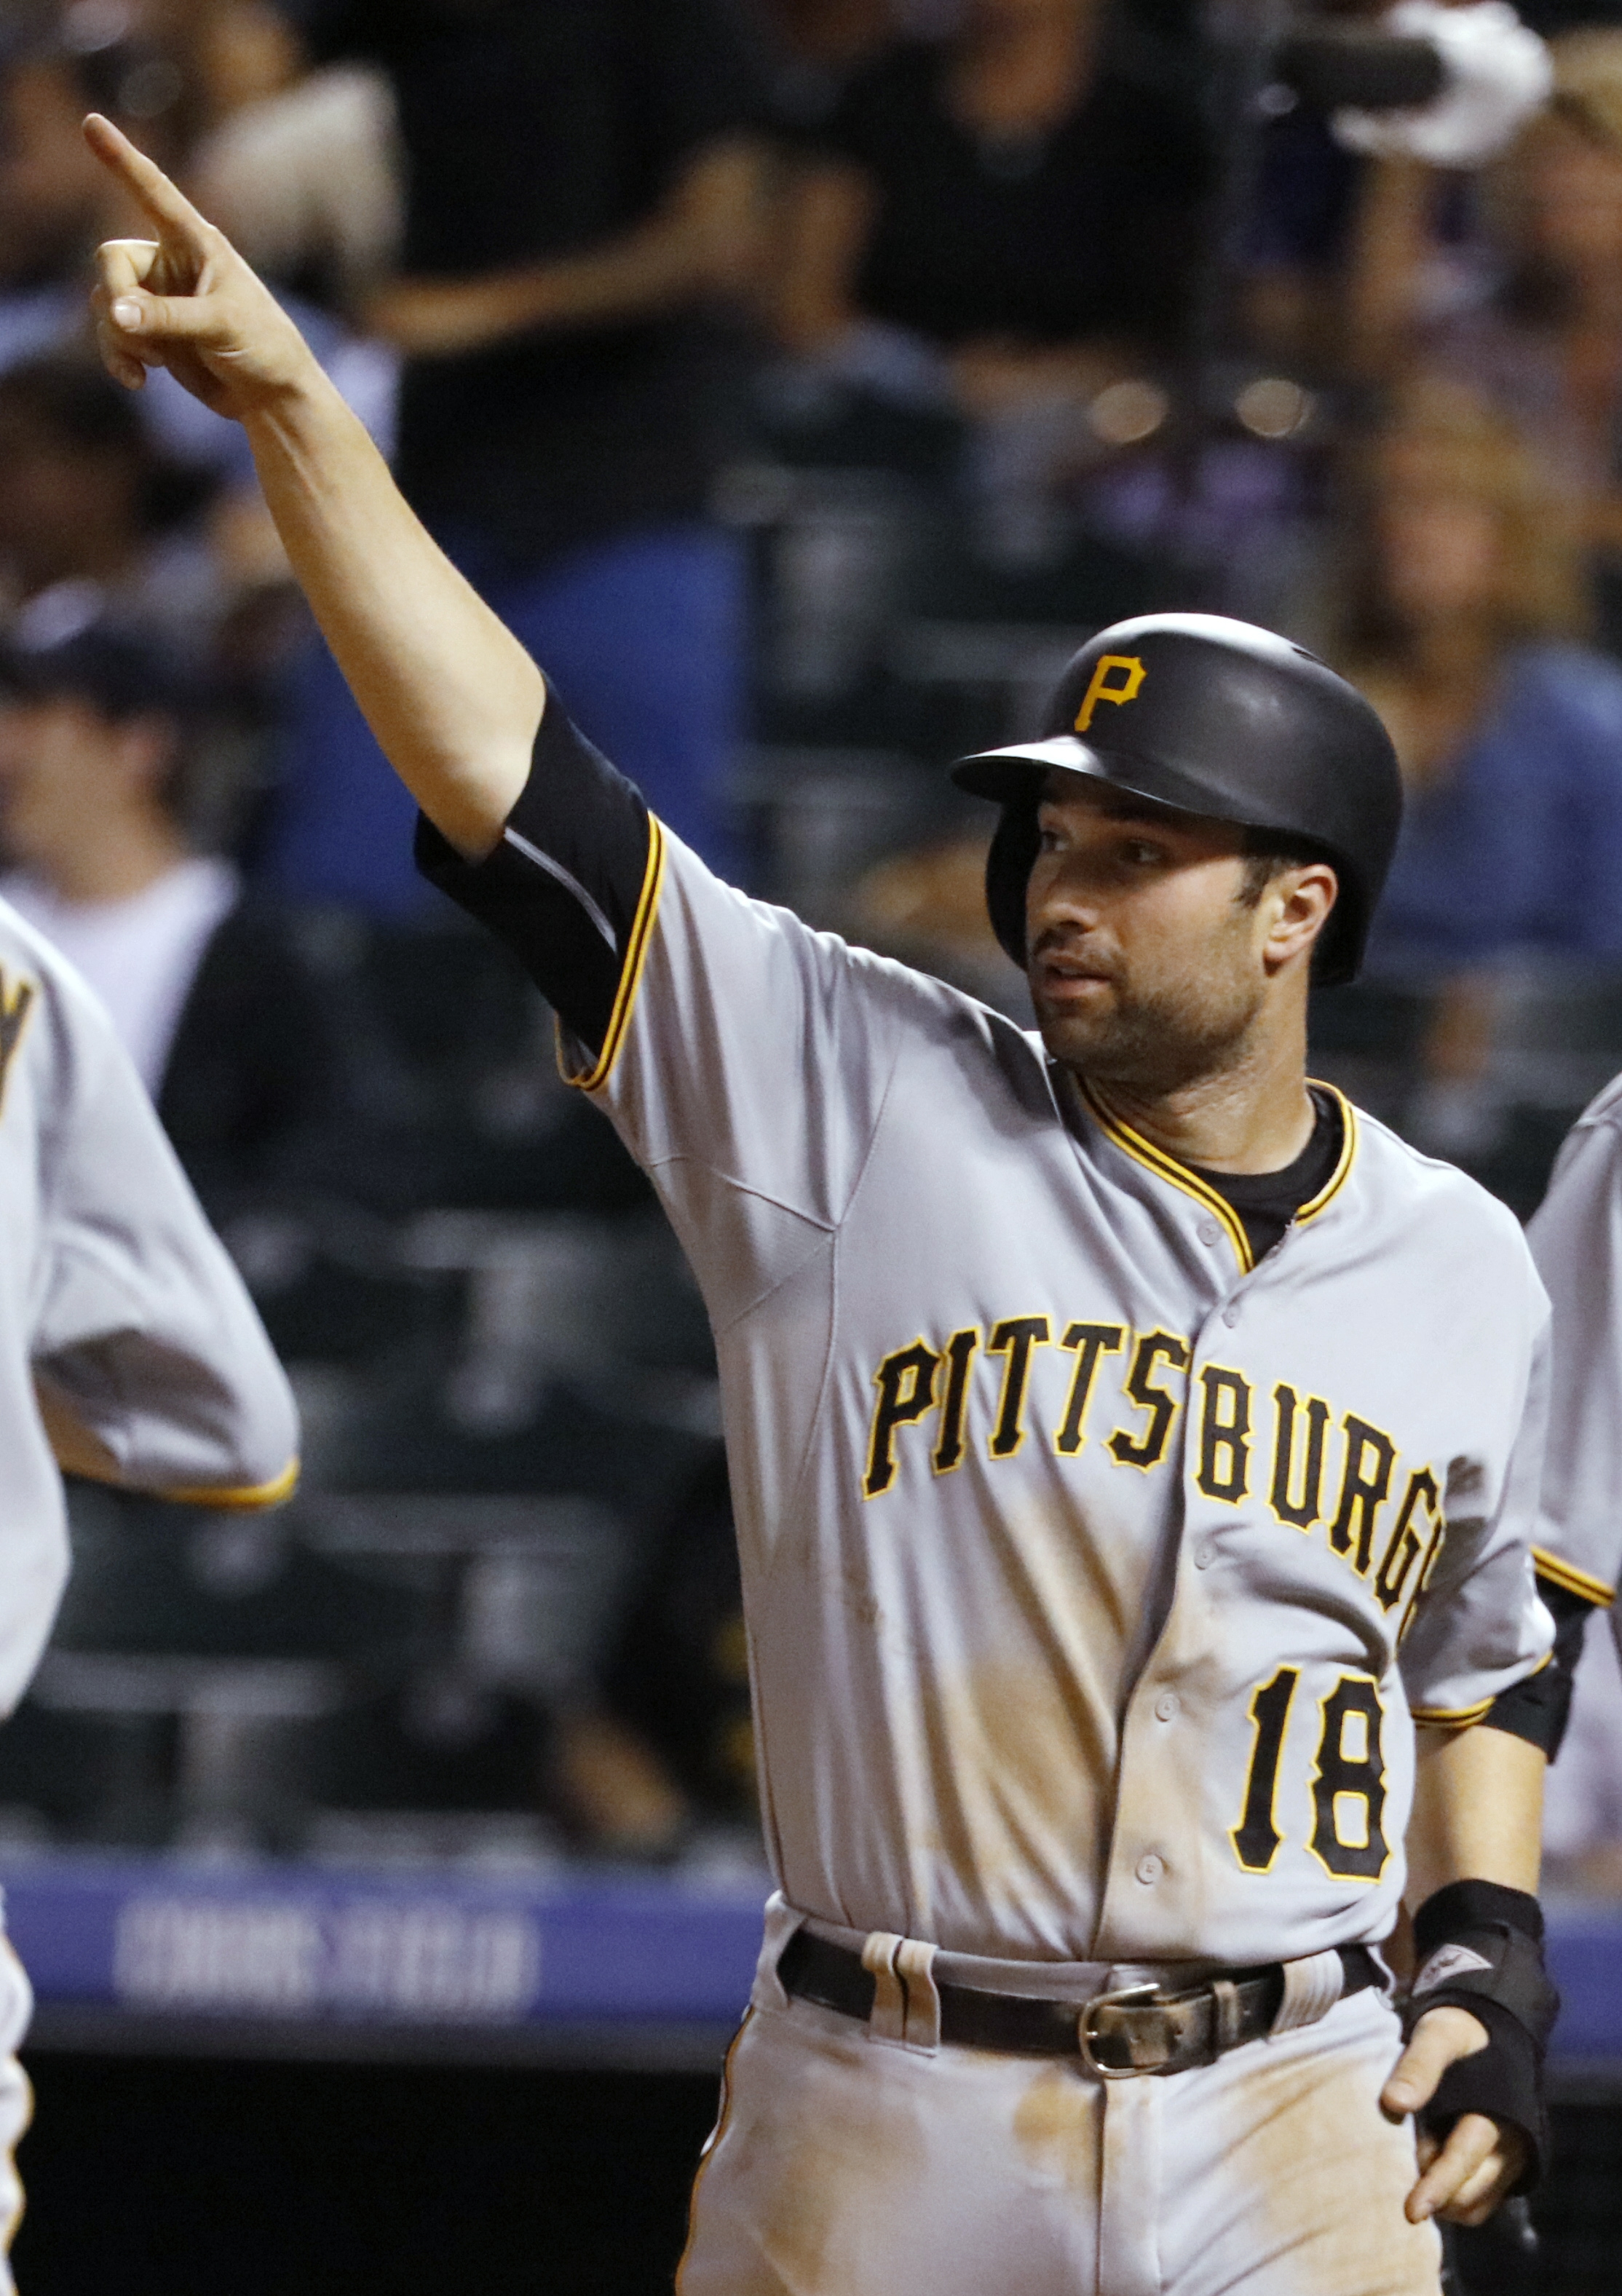 FILE - This Sept. 23, 2015 file photo shows Pittsburgh Pirates' Neil Walker gesturing to Sean Rodriguez after Rodriguez hit a three-run double against the Colorado Rockies during the ninth inning of a baseball game in Denver. The New York Mets have acquir